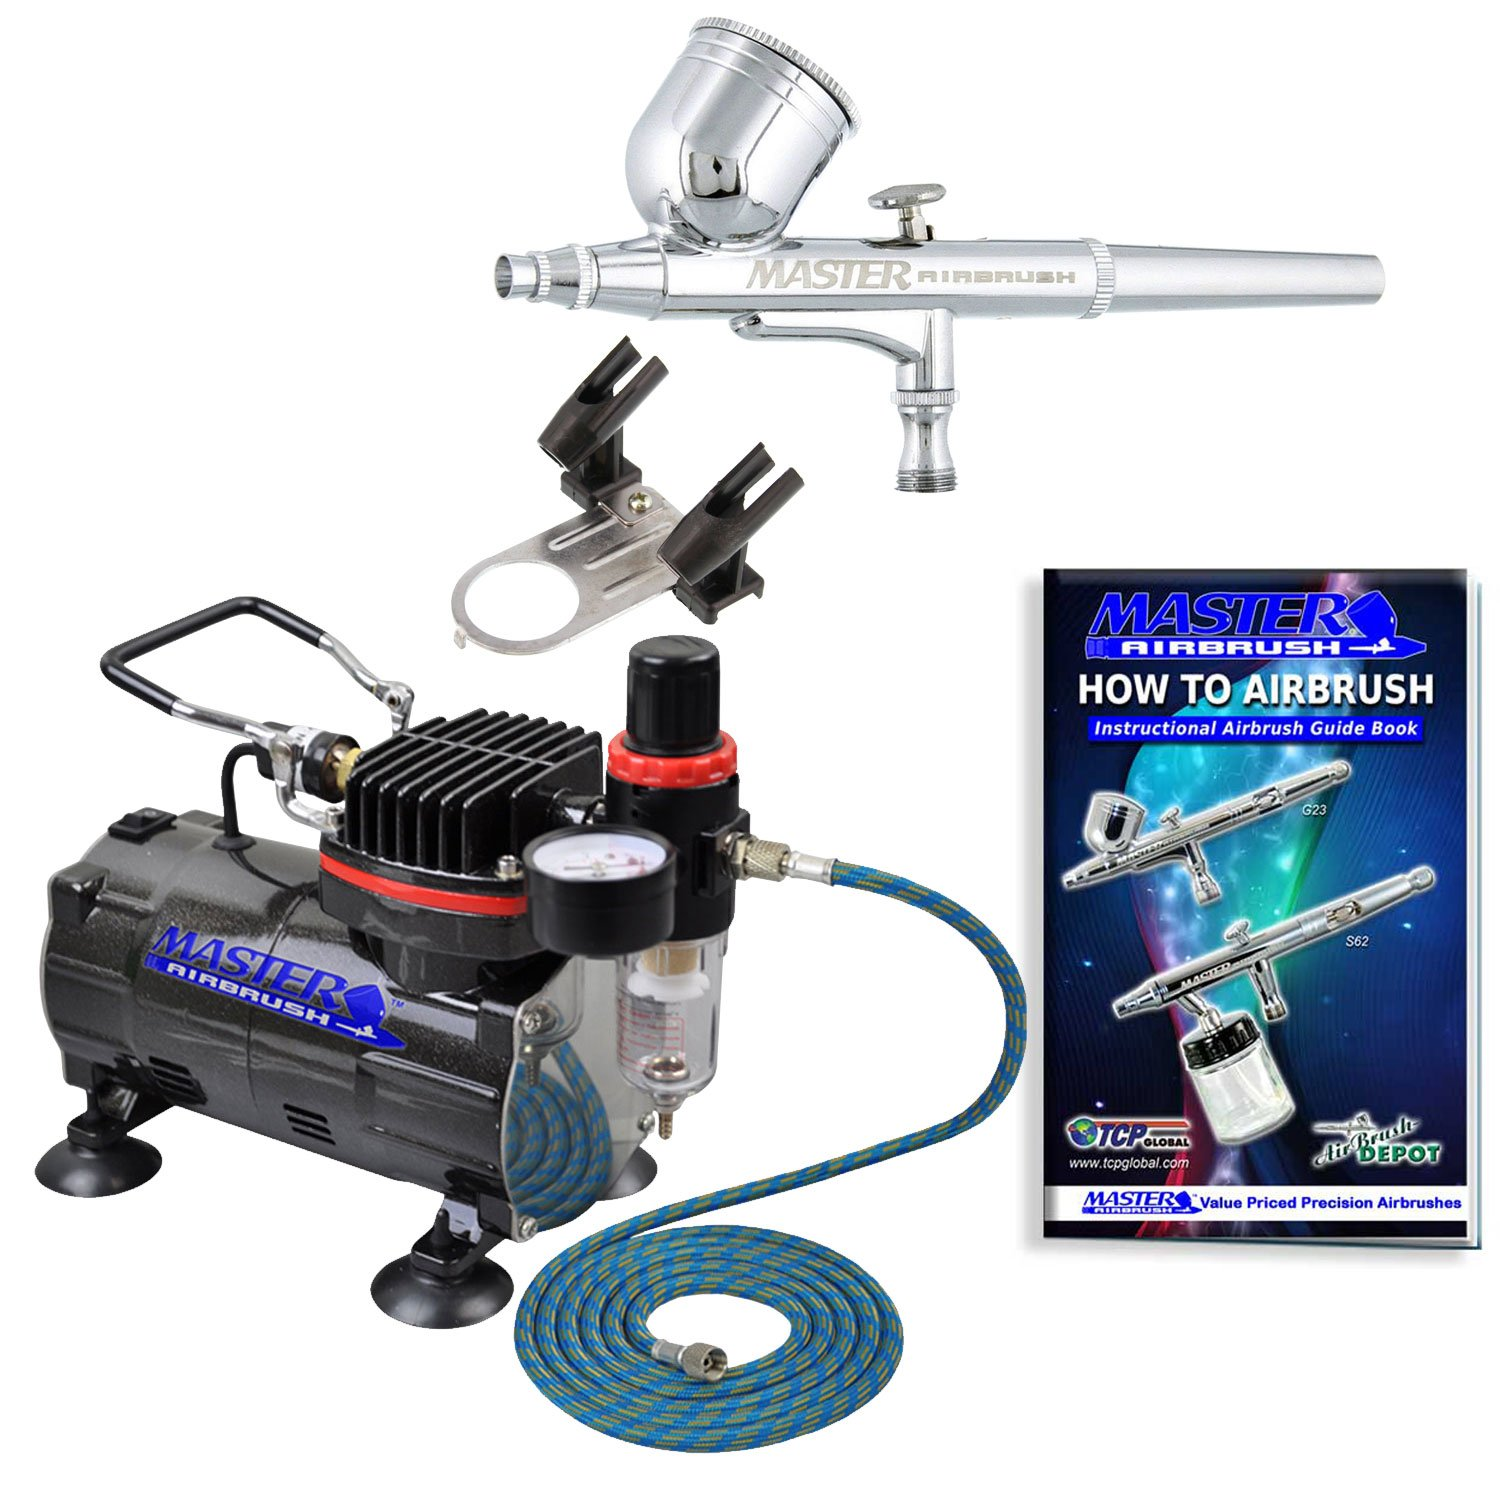 Master Airbrush Model G222 Dual-Action Airbrush Pro Set with ABD TC-20T Tank Compressor 4336951541